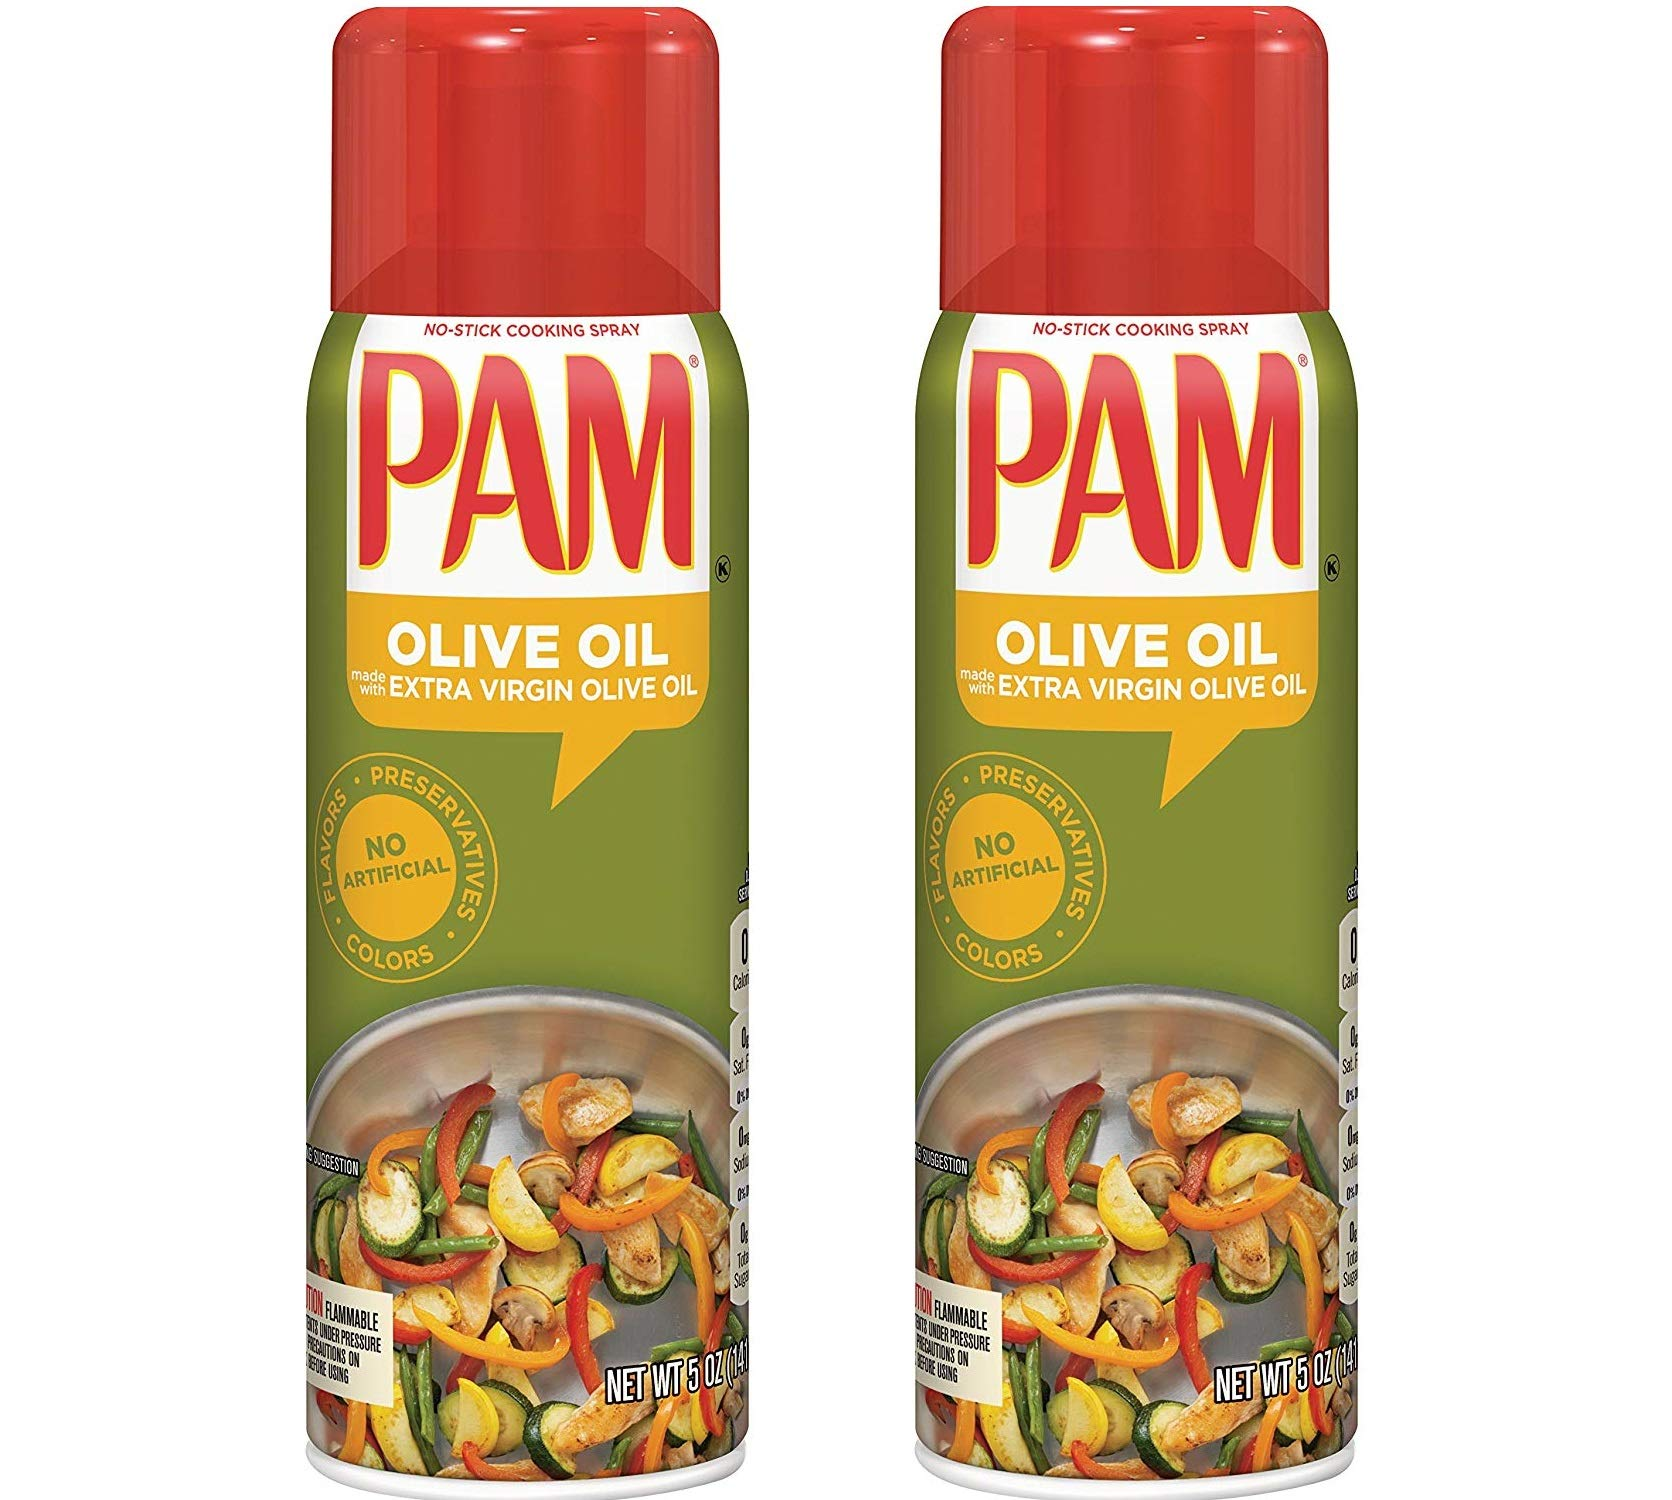 PAM Olive Oil Cooking Spray, 5 Oz (2 Pack) by PAM